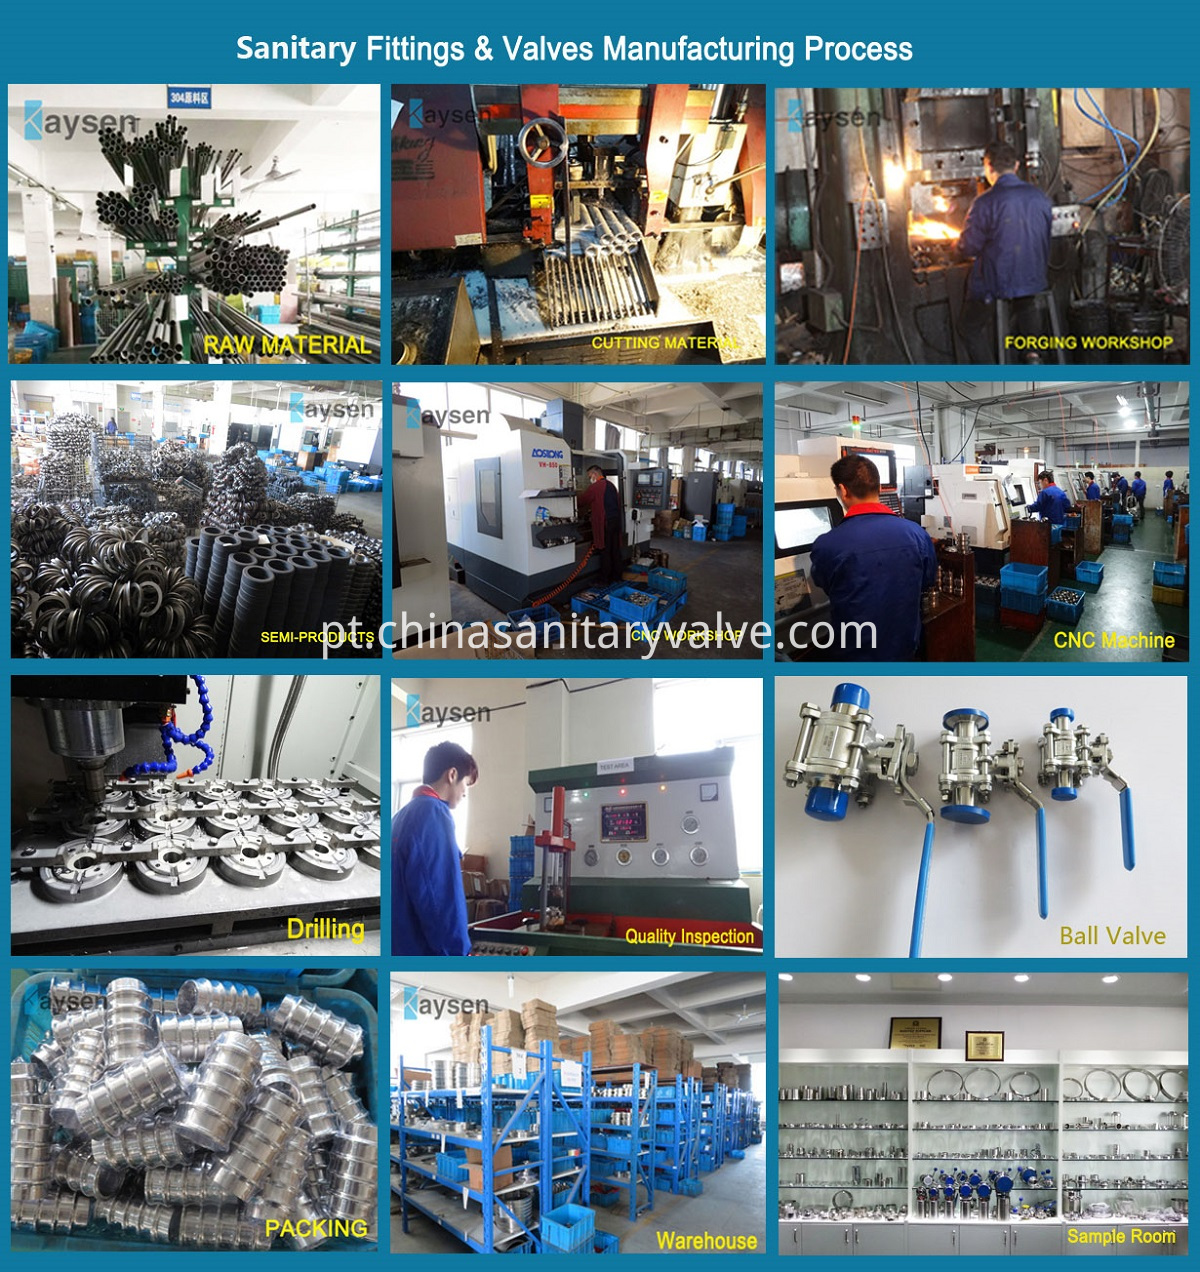 Sanitary Products Manufacturing Process